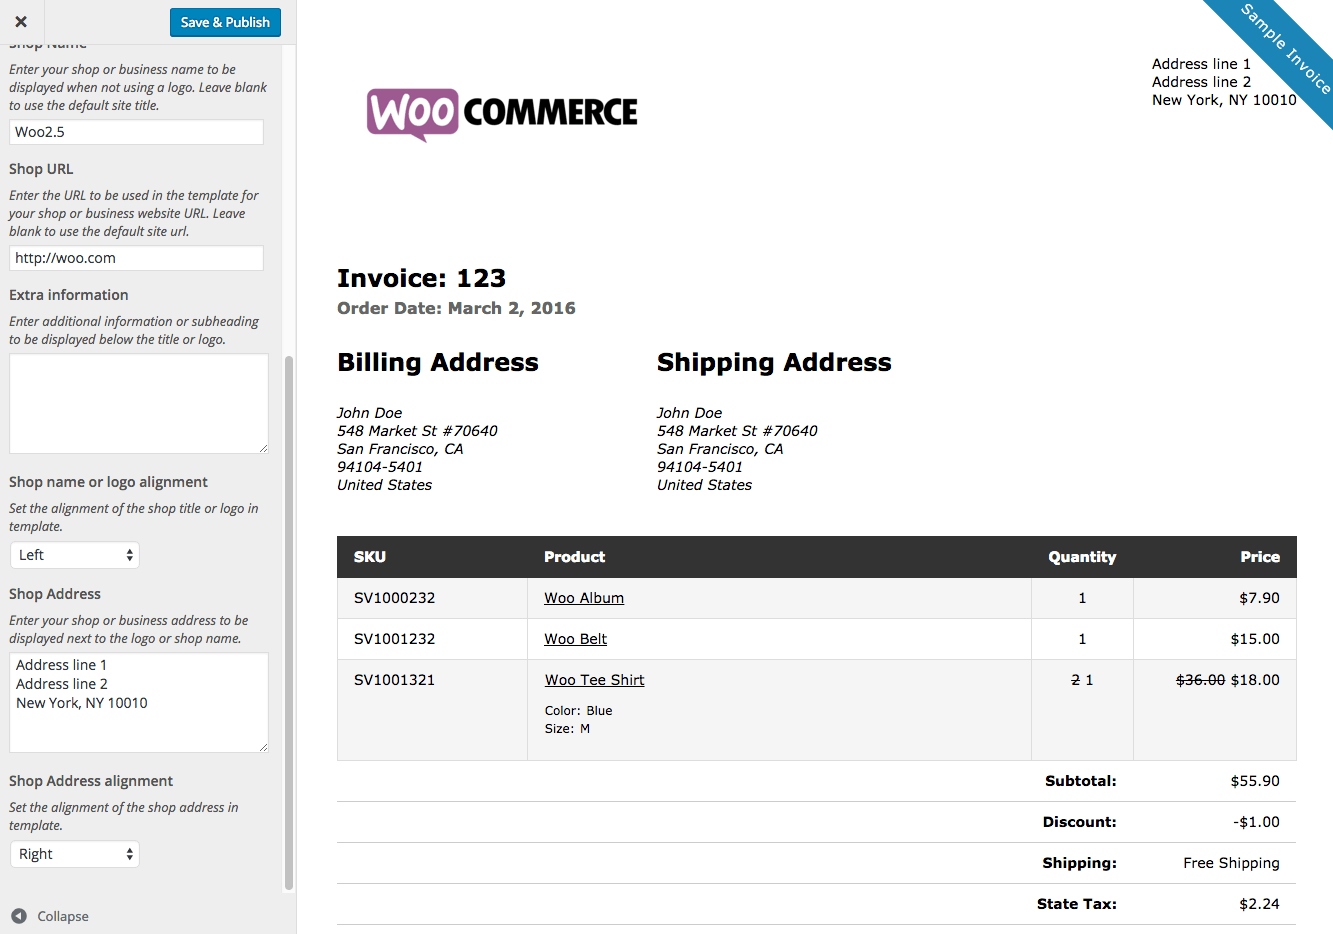 Floobydustus  Fascinating Print Invoices Amp Packing Lists  Woocommerce With Foxy Woocommerce Print Invoices  Packing Lists Customizer With Astonishing Aliexpress Print Invoice Also Web Based Invoicing Software In Addition Self Employed Invoices And Make Invoice In Excel As Well As Tax Invoice Australia Template Additionally Po And Invoice From Woocommercecom With Floobydustus  Foxy Print Invoices Amp Packing Lists  Woocommerce With Astonishing Woocommerce Print Invoices  Packing Lists Customizer And Fascinating Aliexpress Print Invoice Also Web Based Invoicing Software In Addition Self Employed Invoices From Woocommercecom